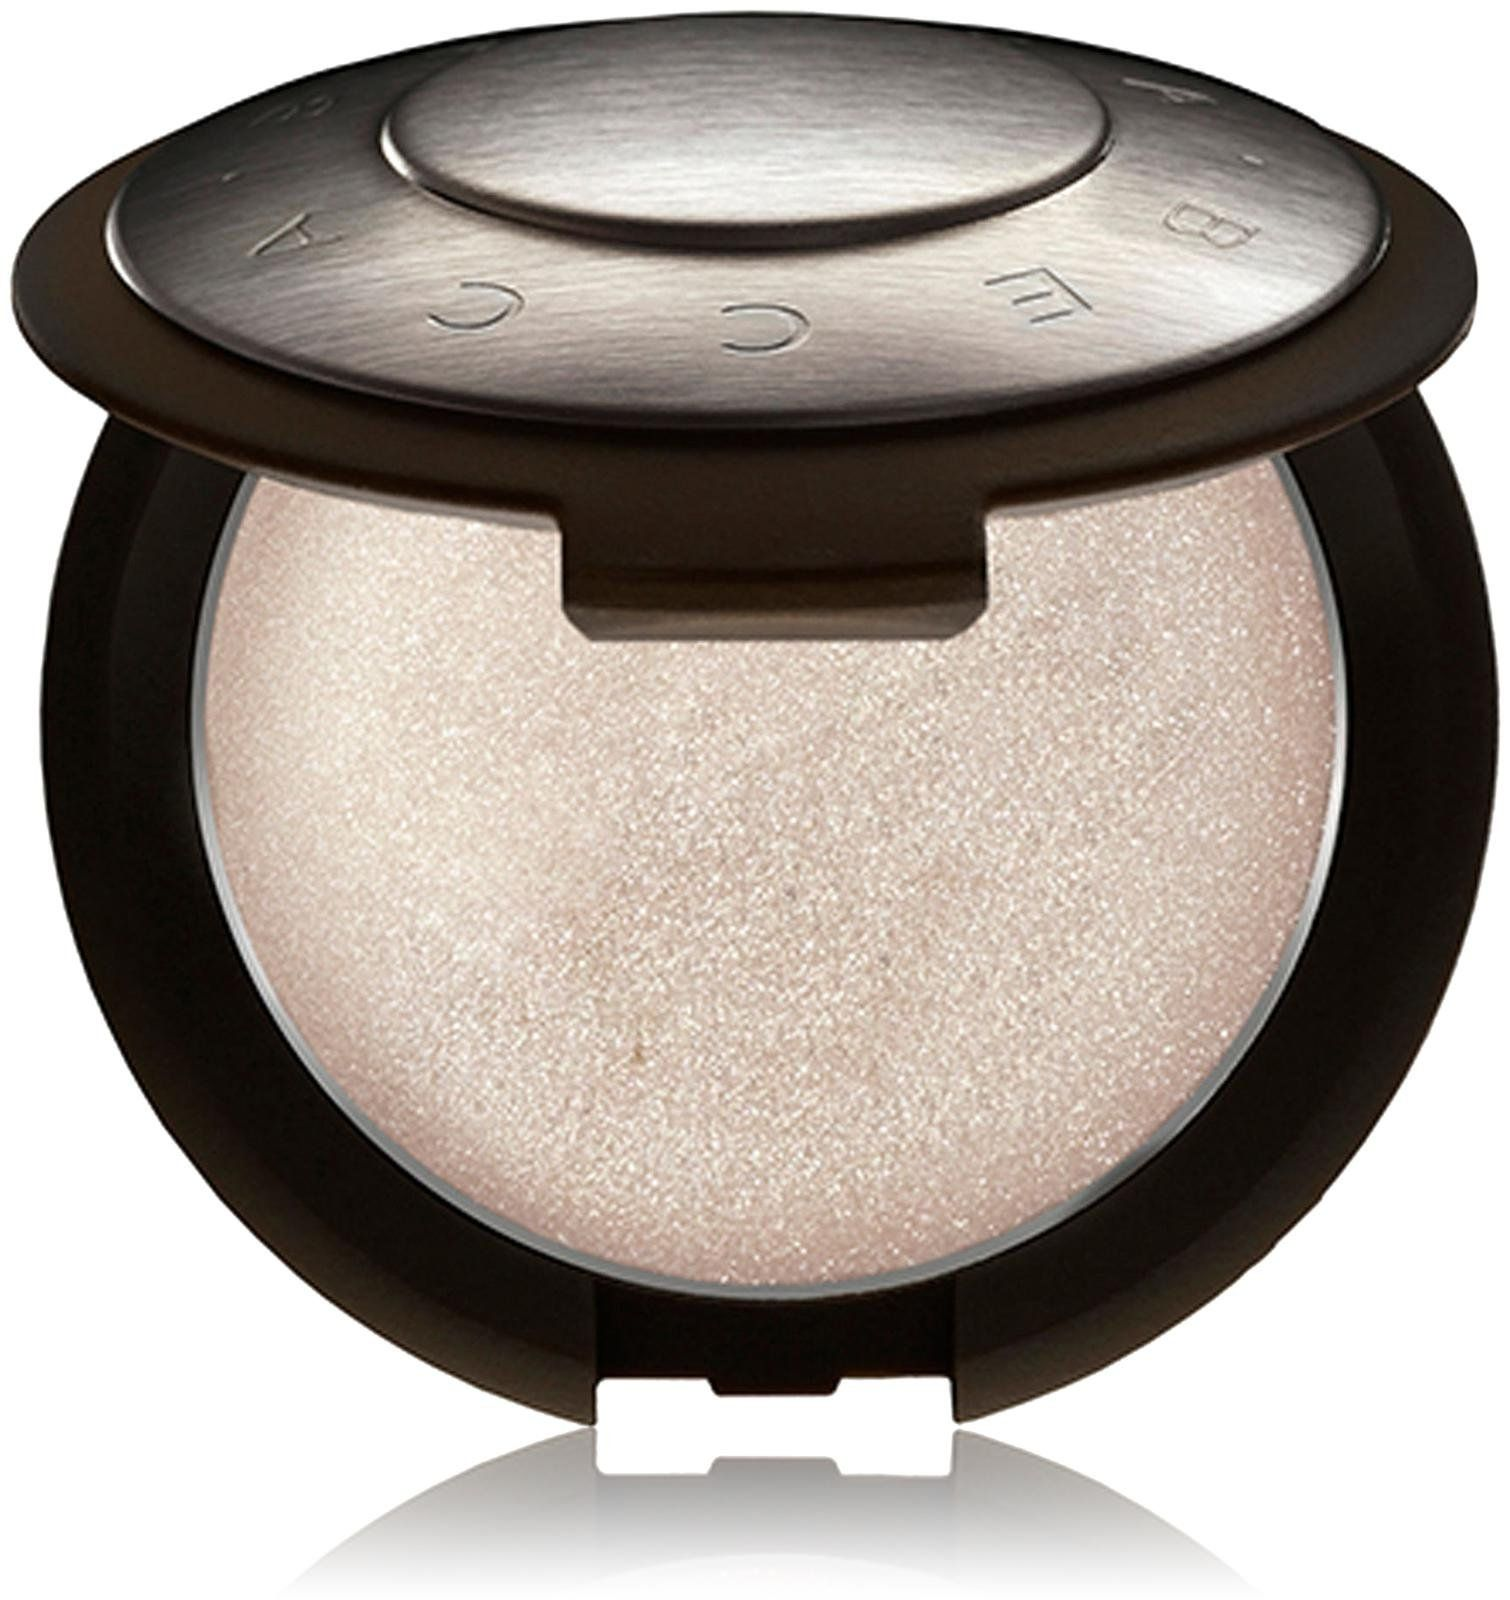 BECCA Shimmering Skin Perfector Poured - Pearl. For fuller-looking lips. Follow with lip gloss or lipstick. Pigment-rich crème. A soft, sophisticated shimmer.